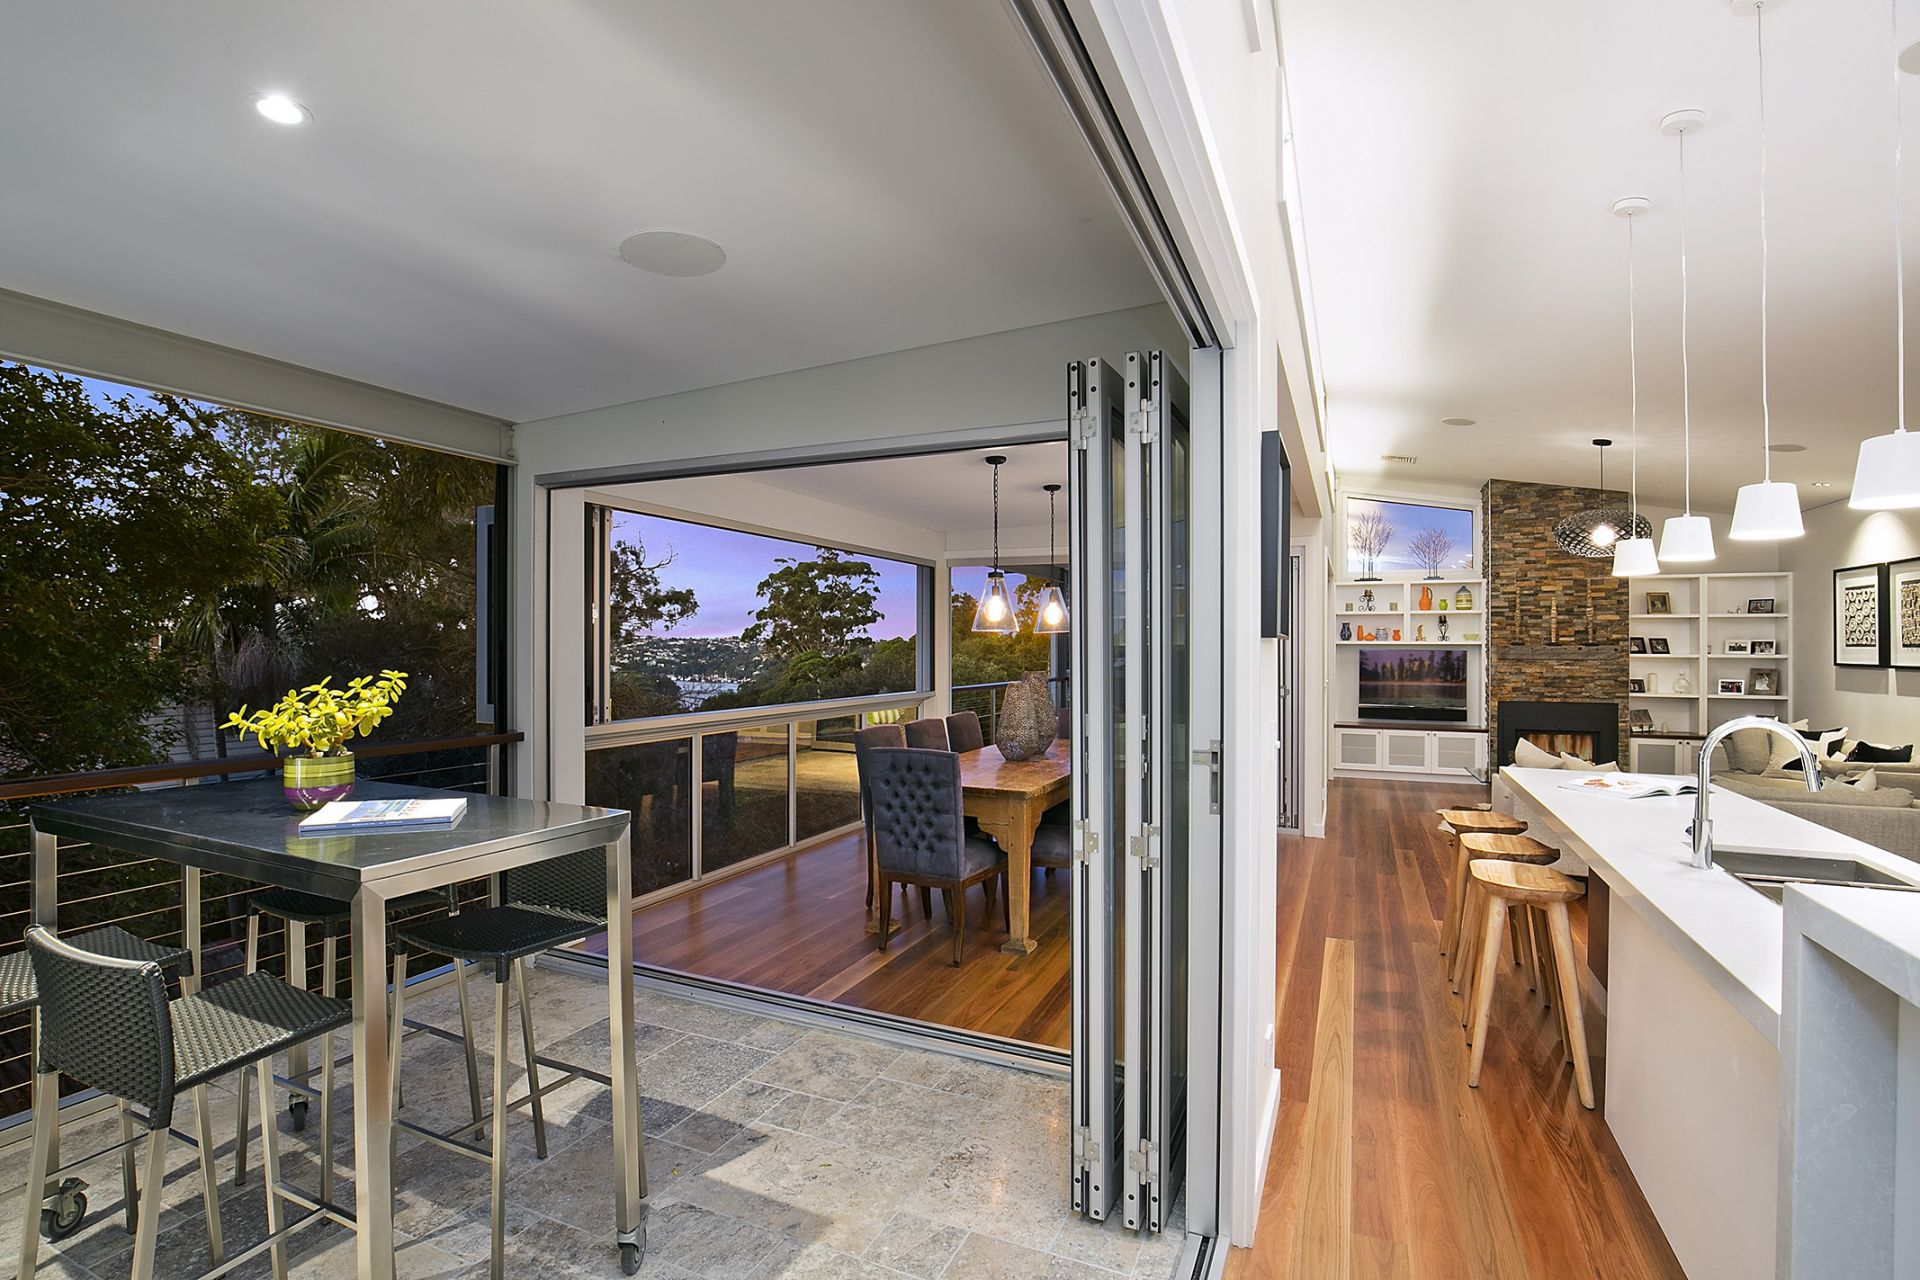 Additional photo for property listing at A modern masterpiece 33a Tunks Street Northbridge, 新南威尔士,2063 澳大利亚